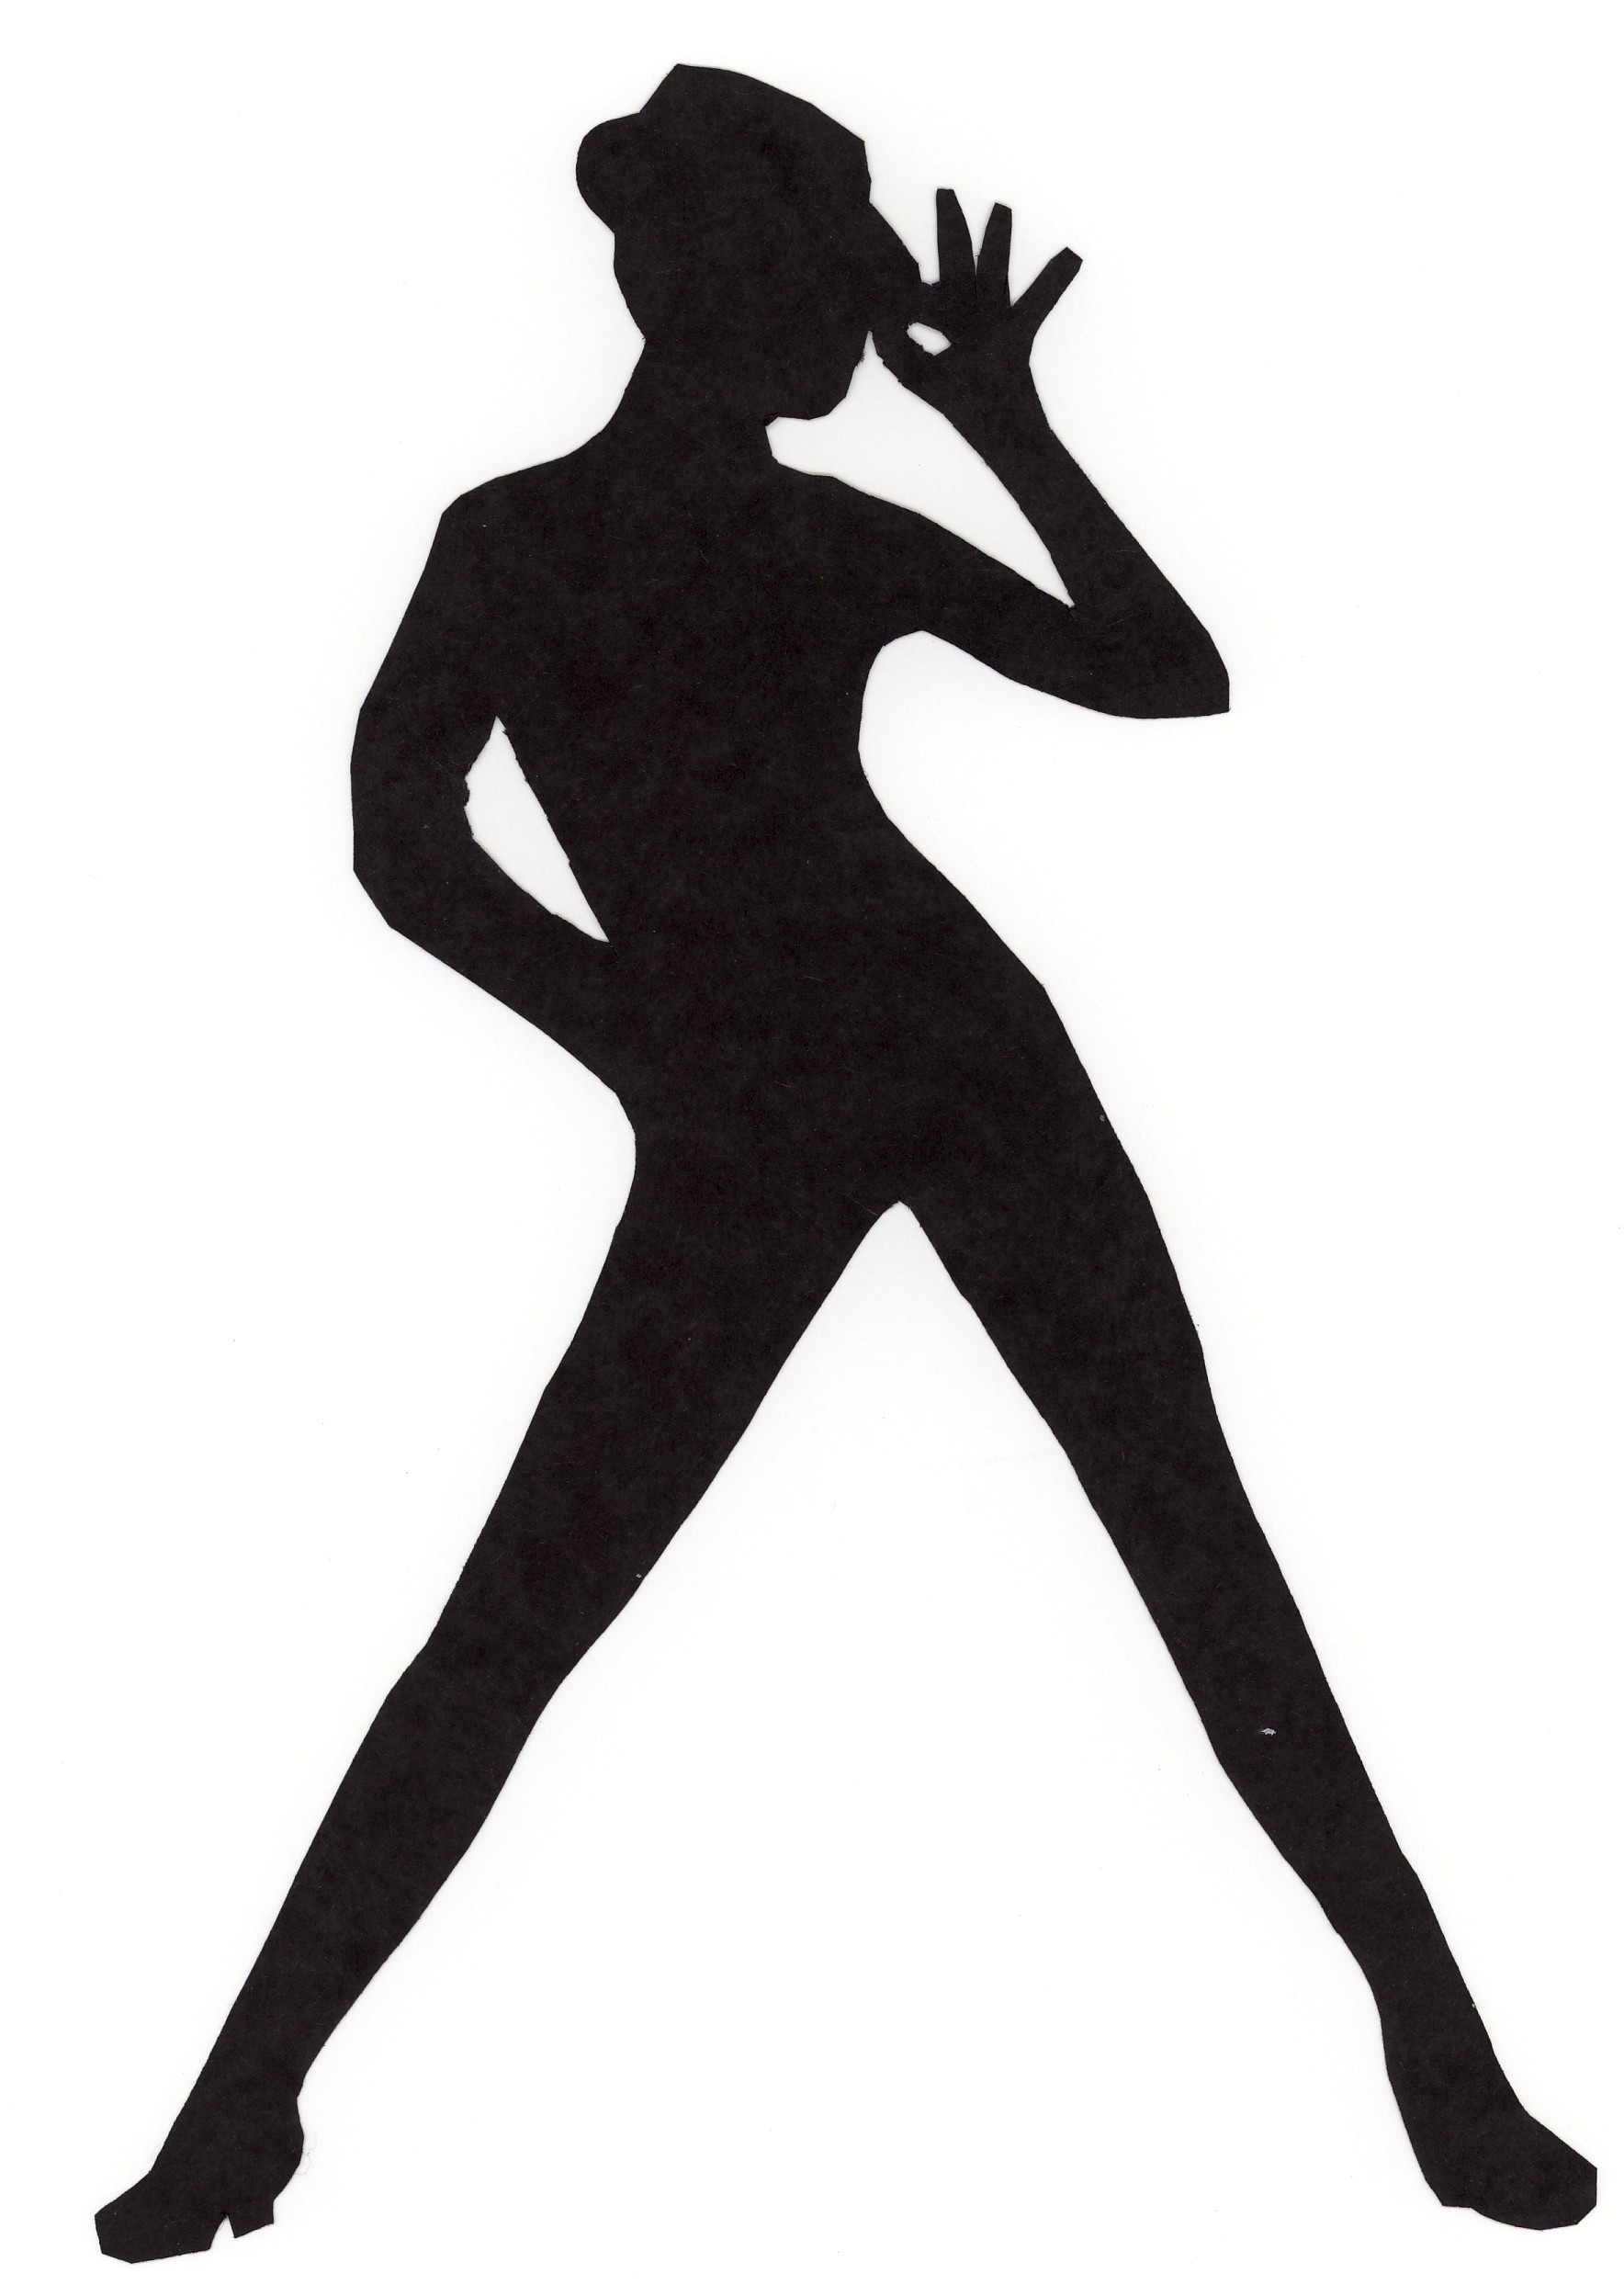 1768x2487 Jazz Dancer Png Silhouette Transparent Jazz Dancer Silhouette.png